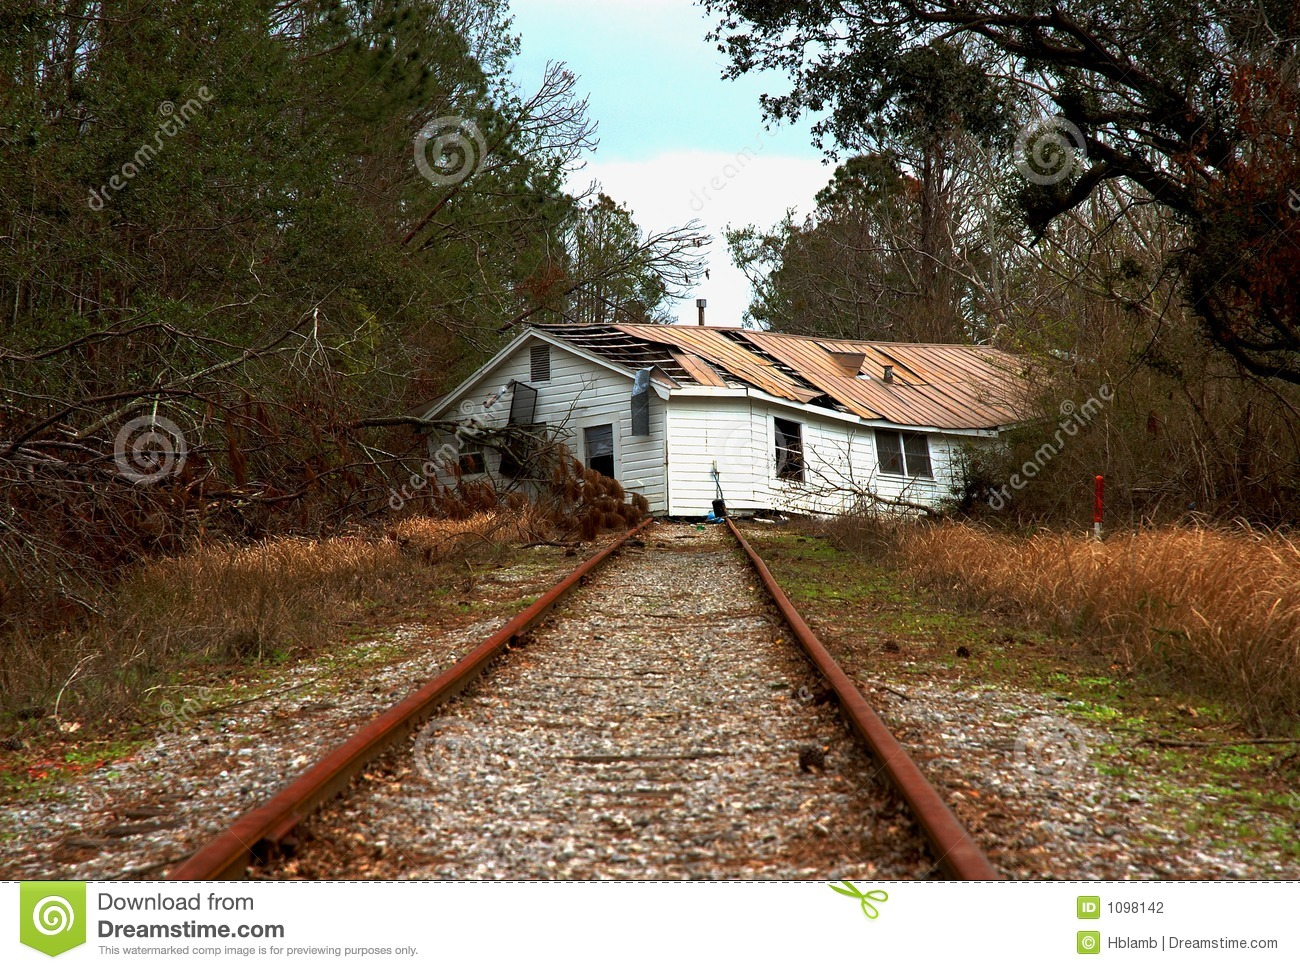 Railroad house house on railroad tracks stock for Classic underground house tracks